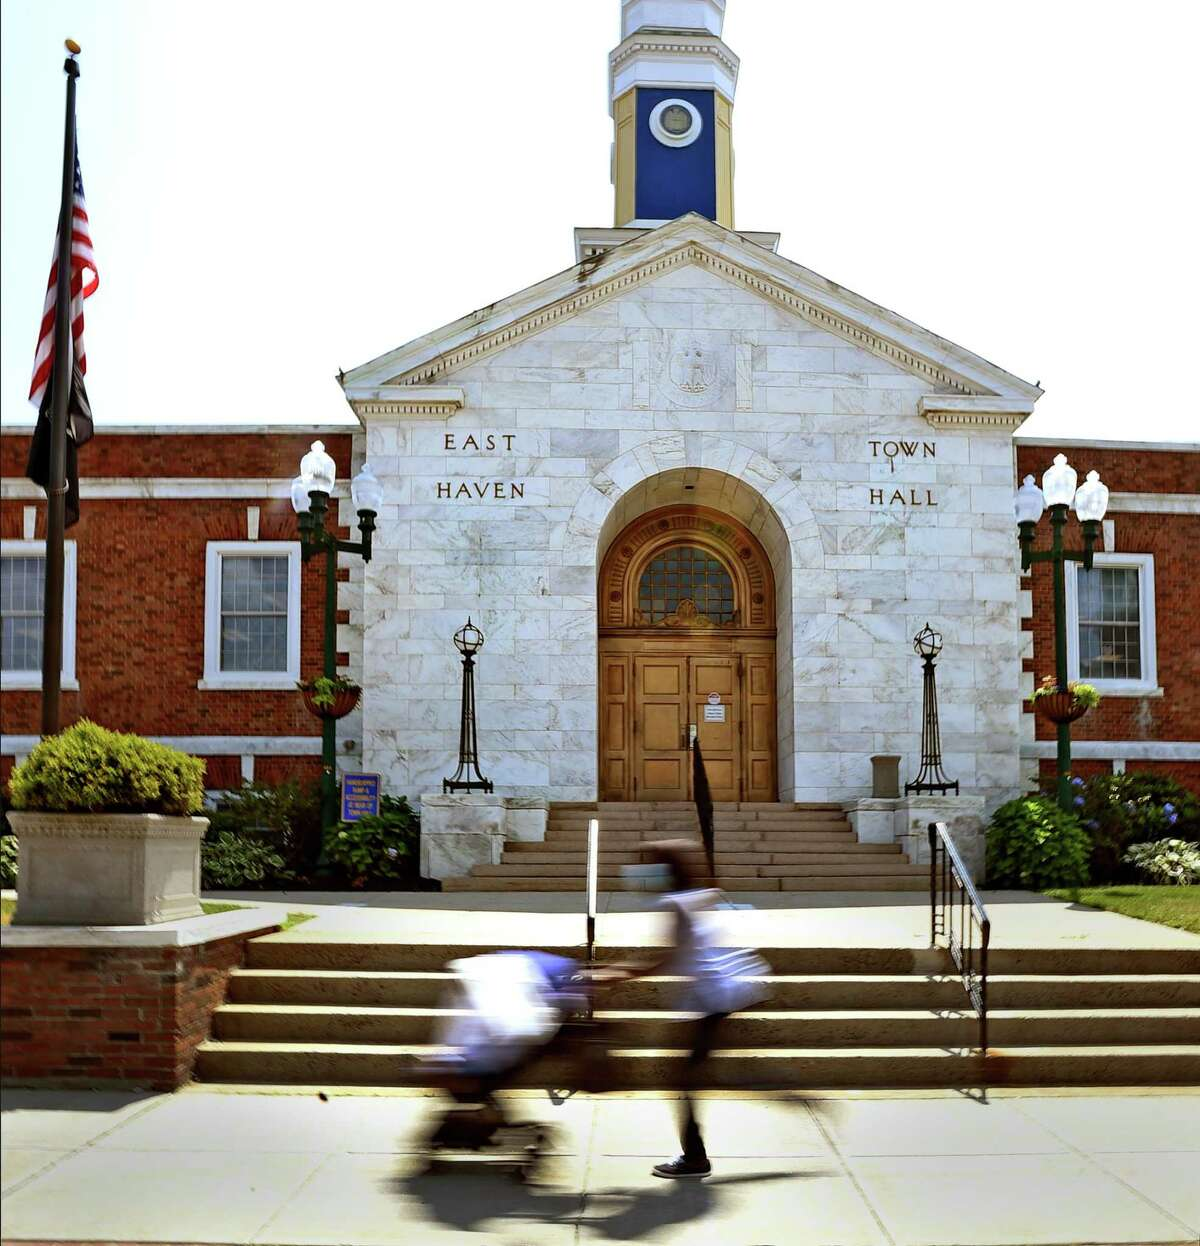 A woman pushes a baby stroller past East Haven Town Hall.